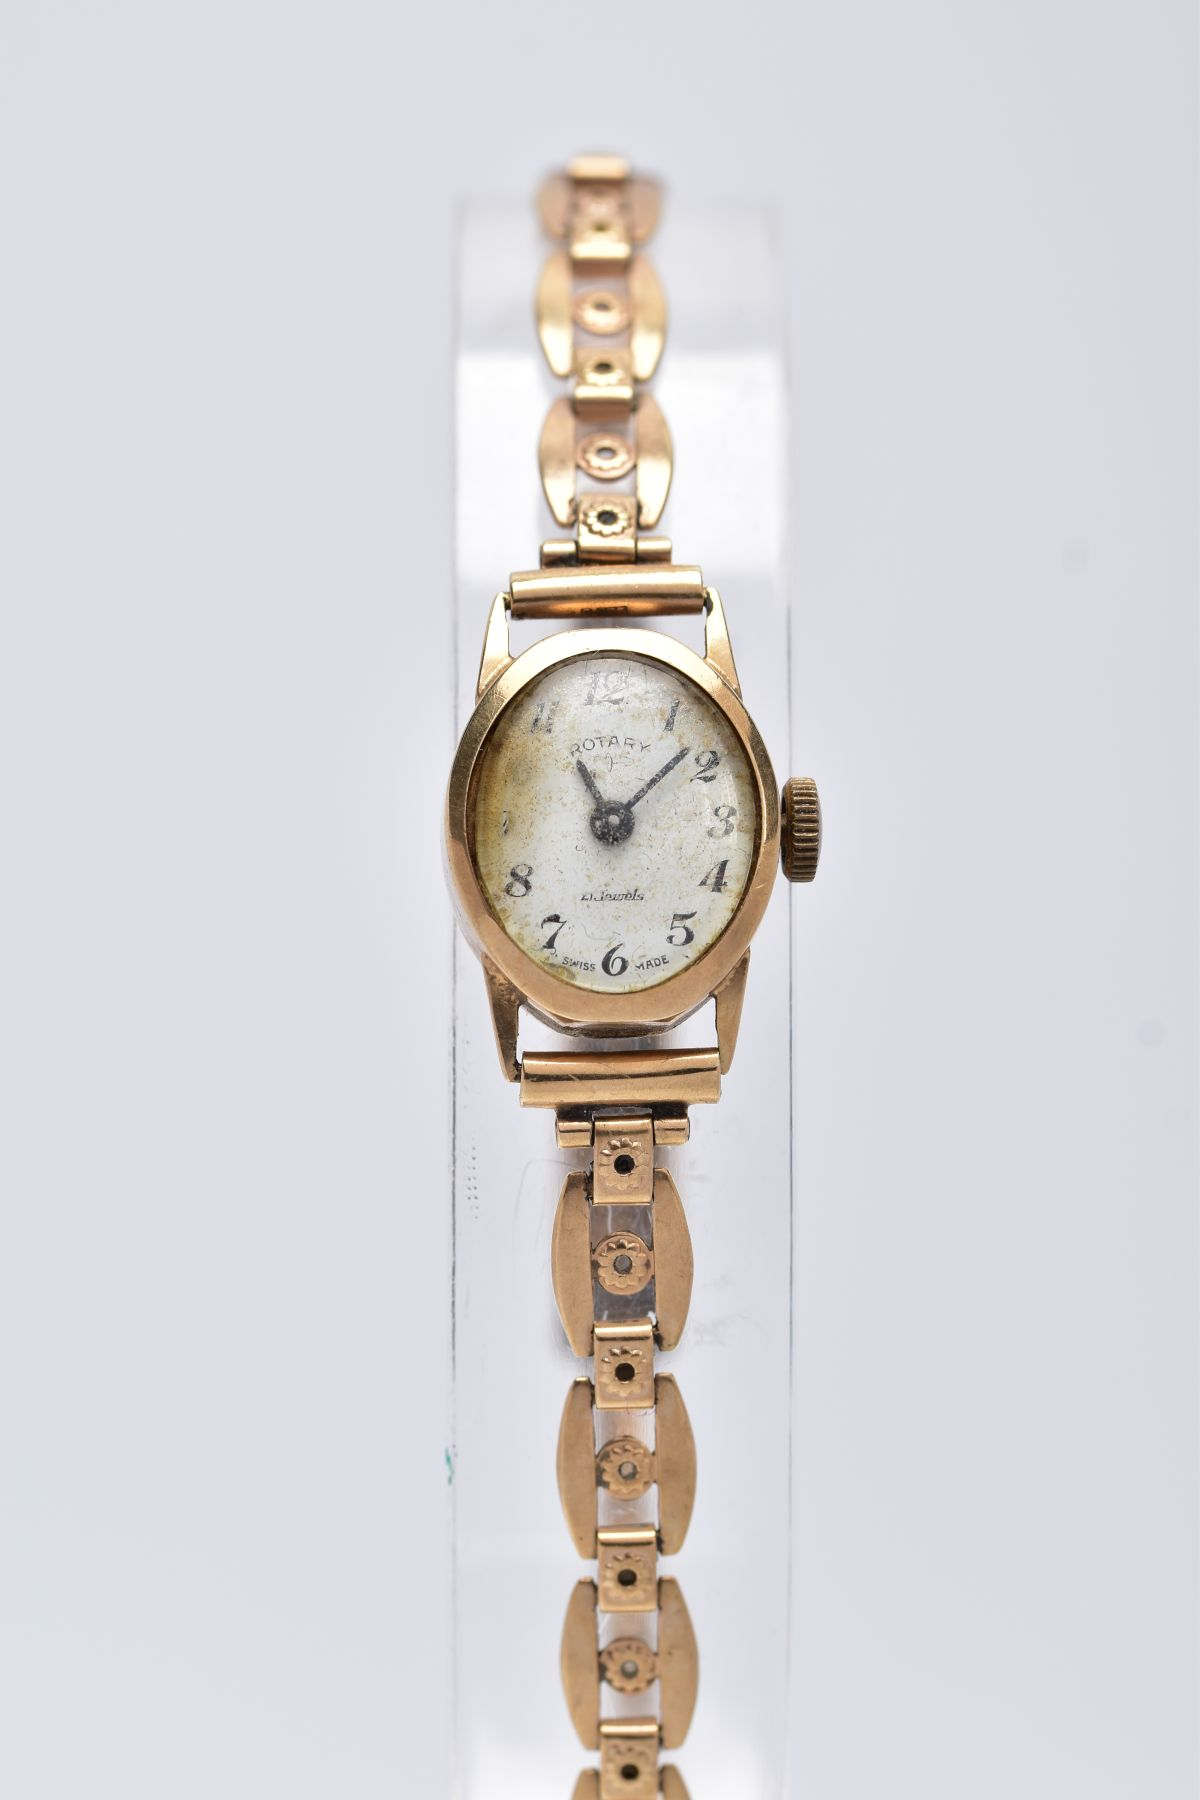 A LADY'S 9CT GOLD ROTARY WRISTWATCH', oval case measuring approximately 16.5mm x 14.0mm,